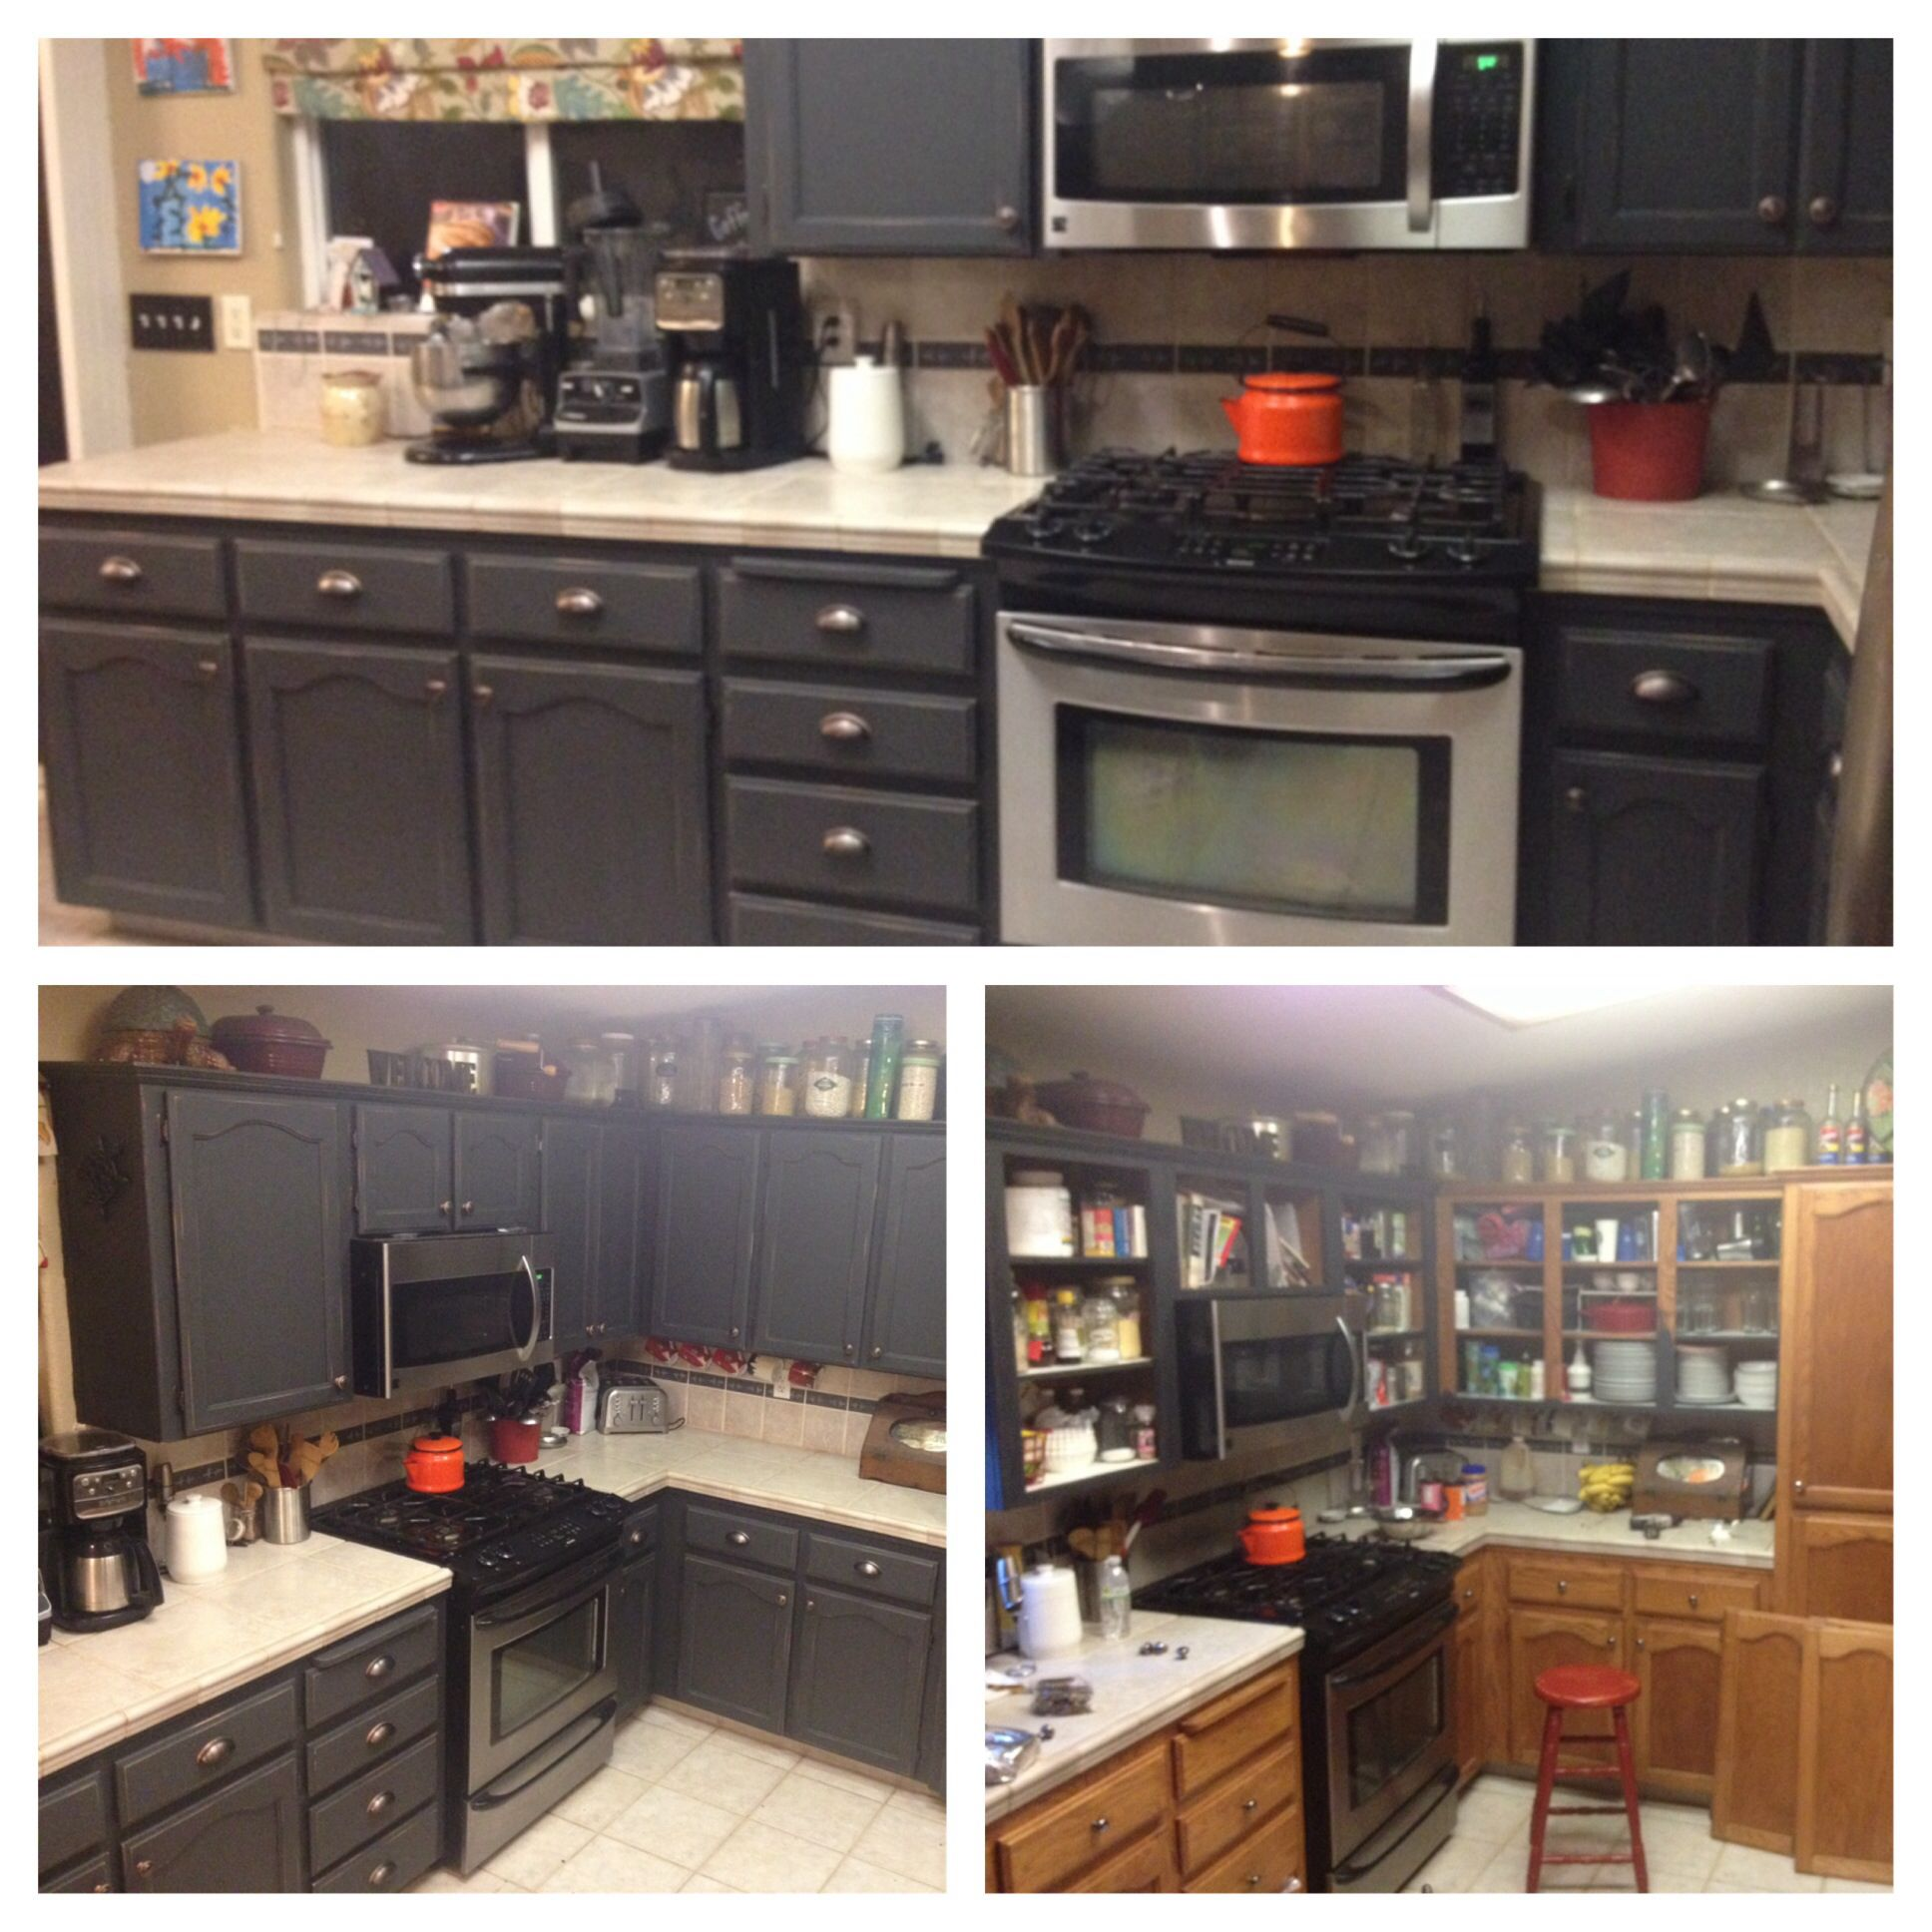 Annie Sloan Painting Kitchen Cabinets: Extreme Makeover, Kitchen Edition! I Painted My Oak